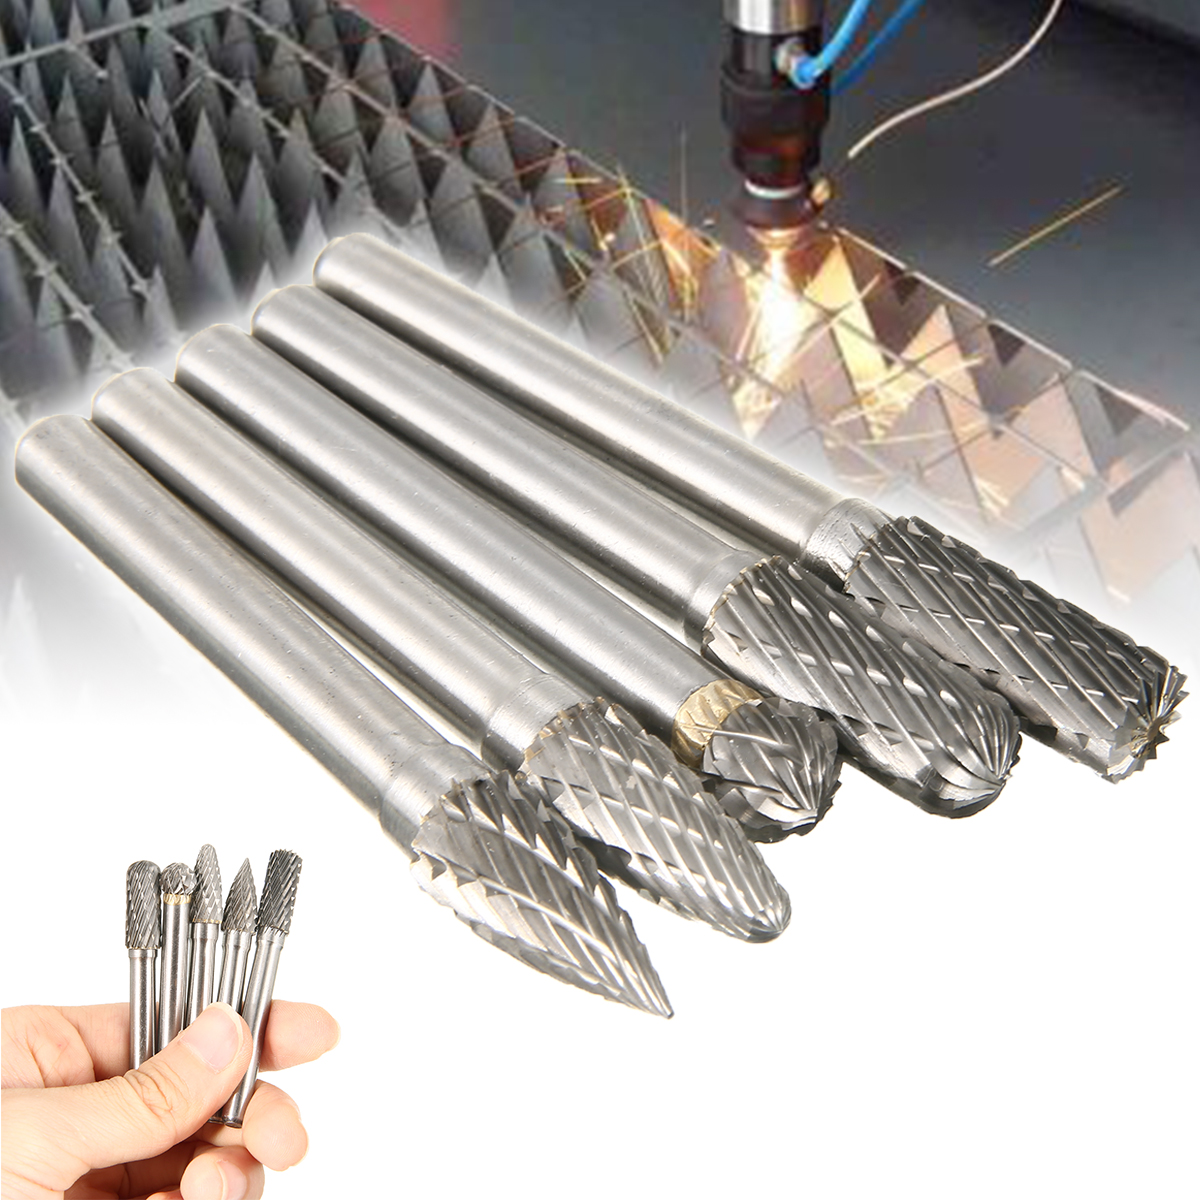 New 5pcs Tungsten Carbide 8mm Rotary Point Burrs Electric Grinder 6mm Shank Bits Set For Finishing Metal Molds Processing